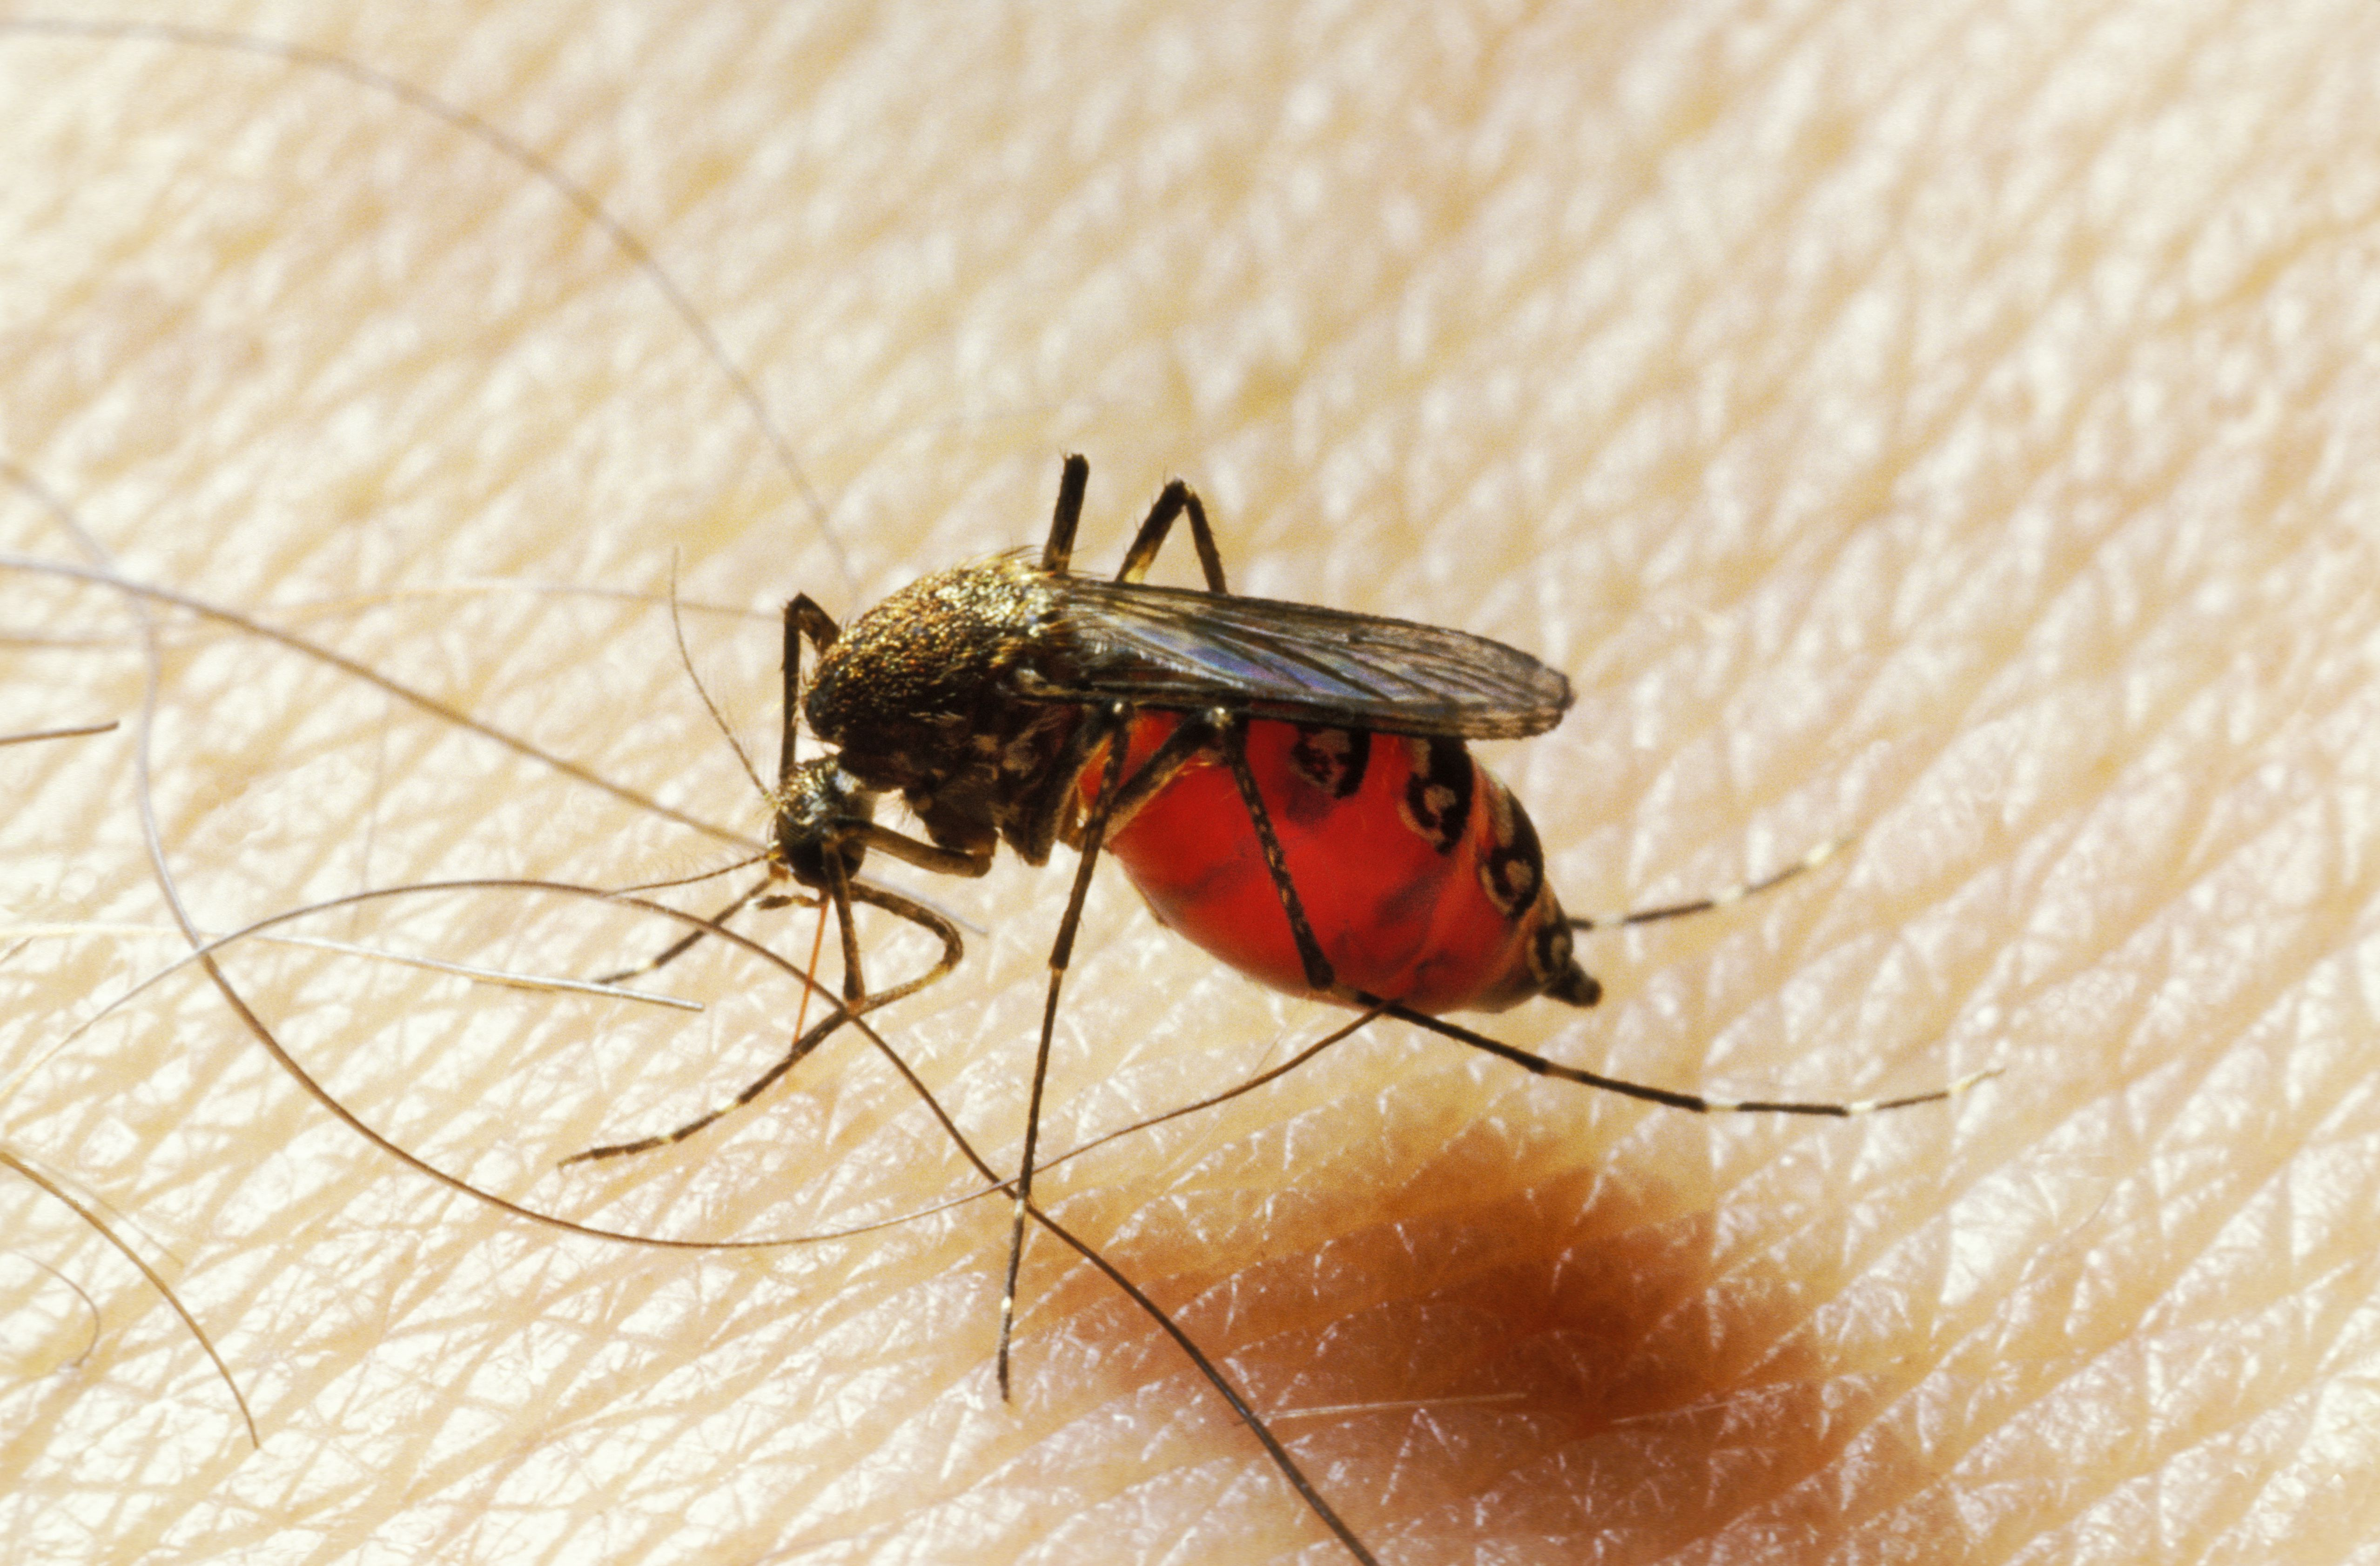 10 Tips for How to Avoid Mosquito Bites: Dengue in Asia